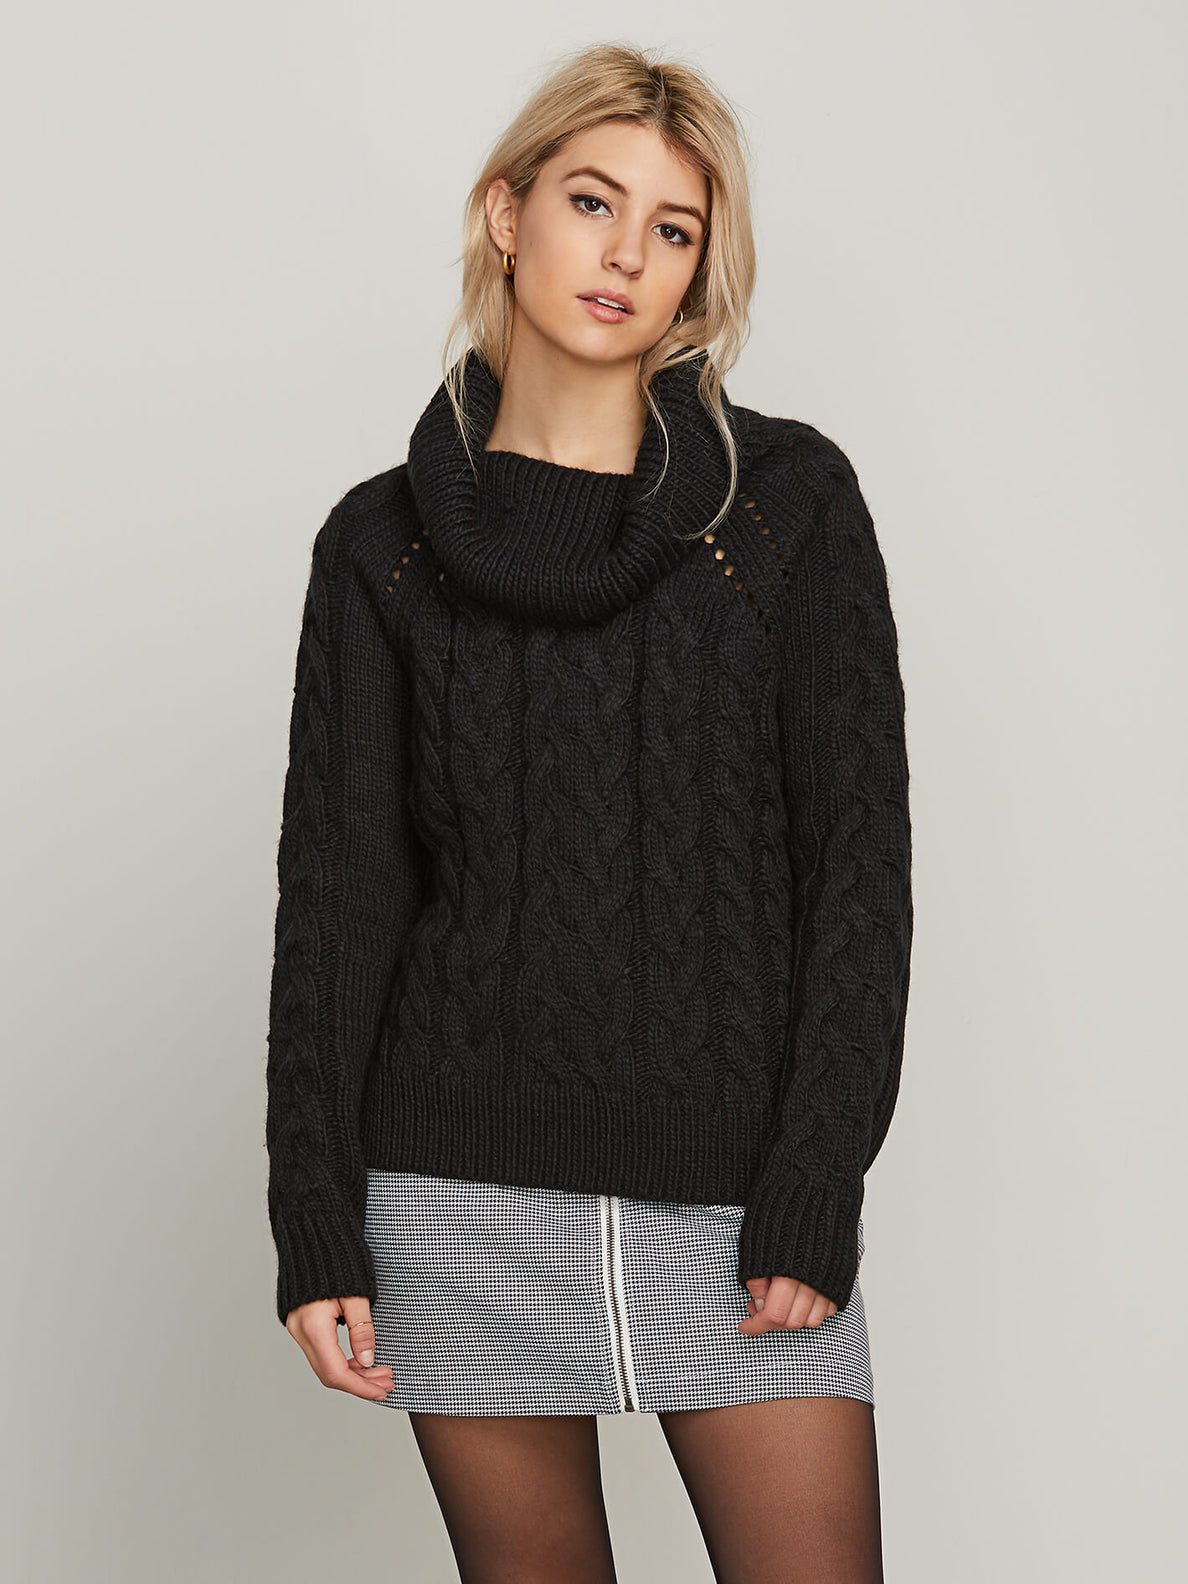 Snooders Sweater In Black, Front View